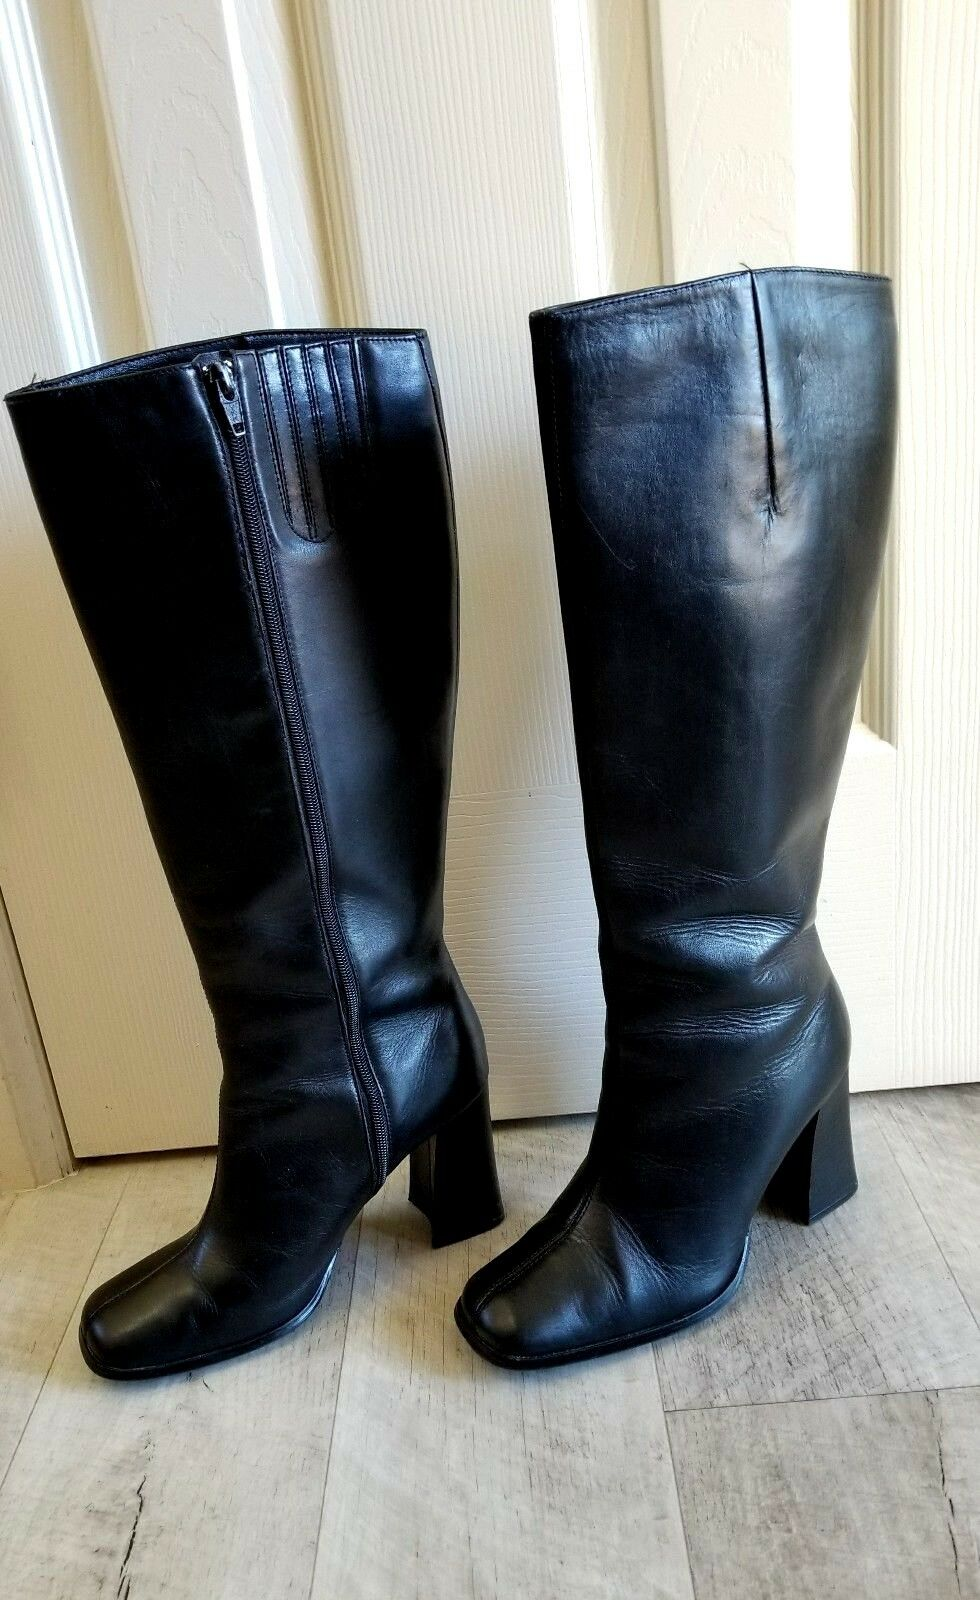 newport news women's 3.5 inches knee high boots size 8M black full zip closure